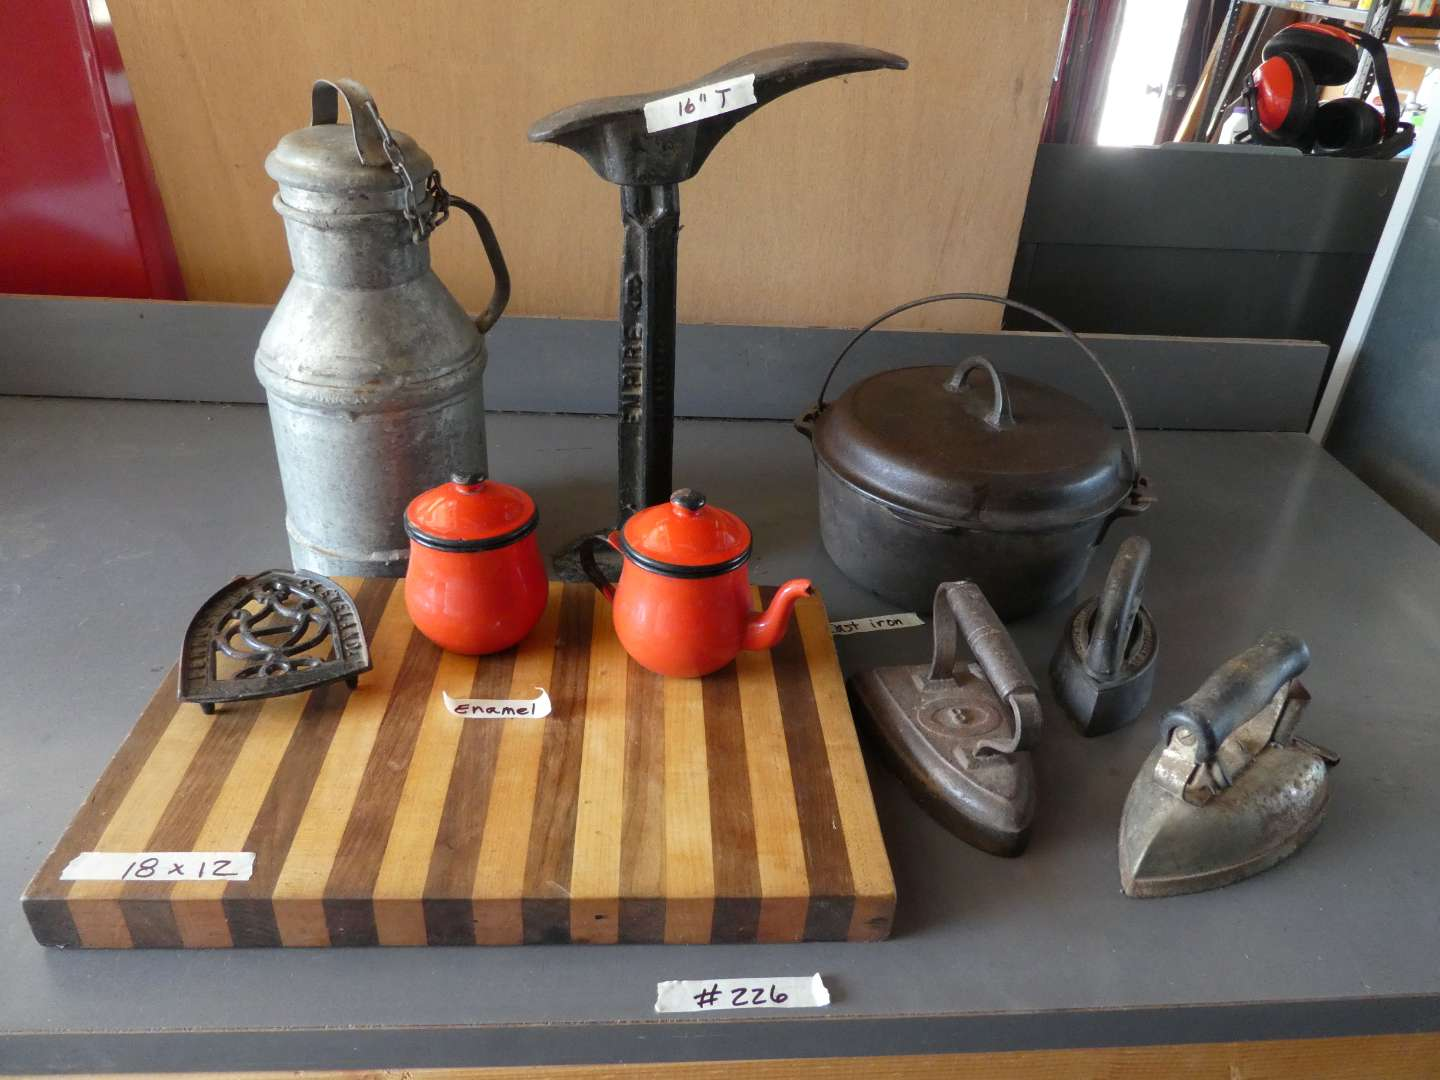 Lot # 226 - Misc. Decor And Kitchen Wares (main image)